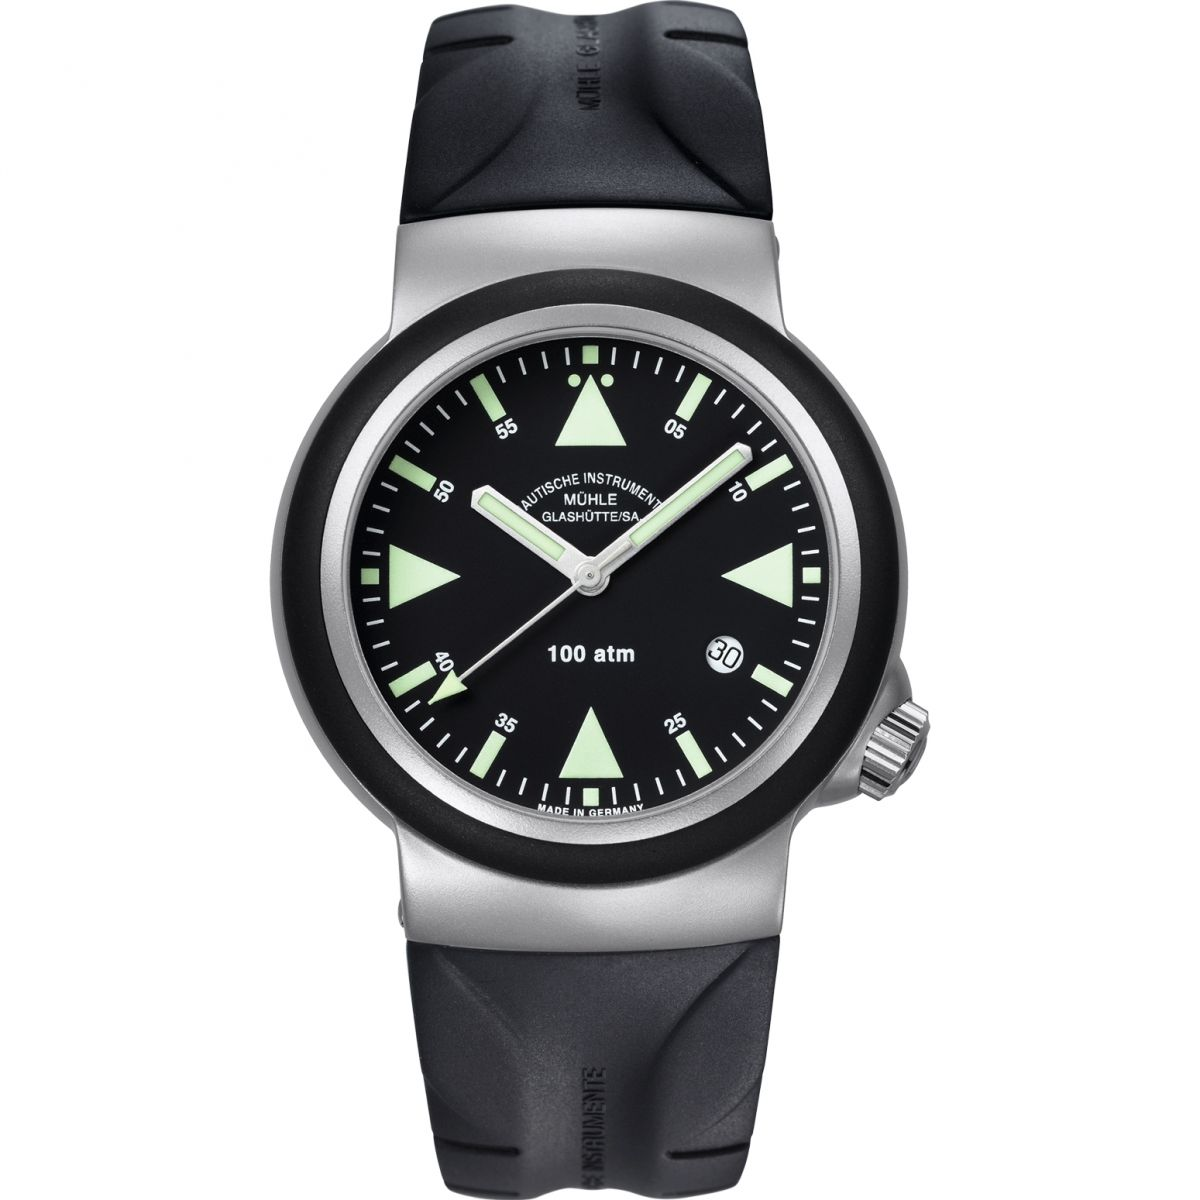 Gents muhle glashutte sar rescue timer watch m1 41 03 kb for Muhle watches